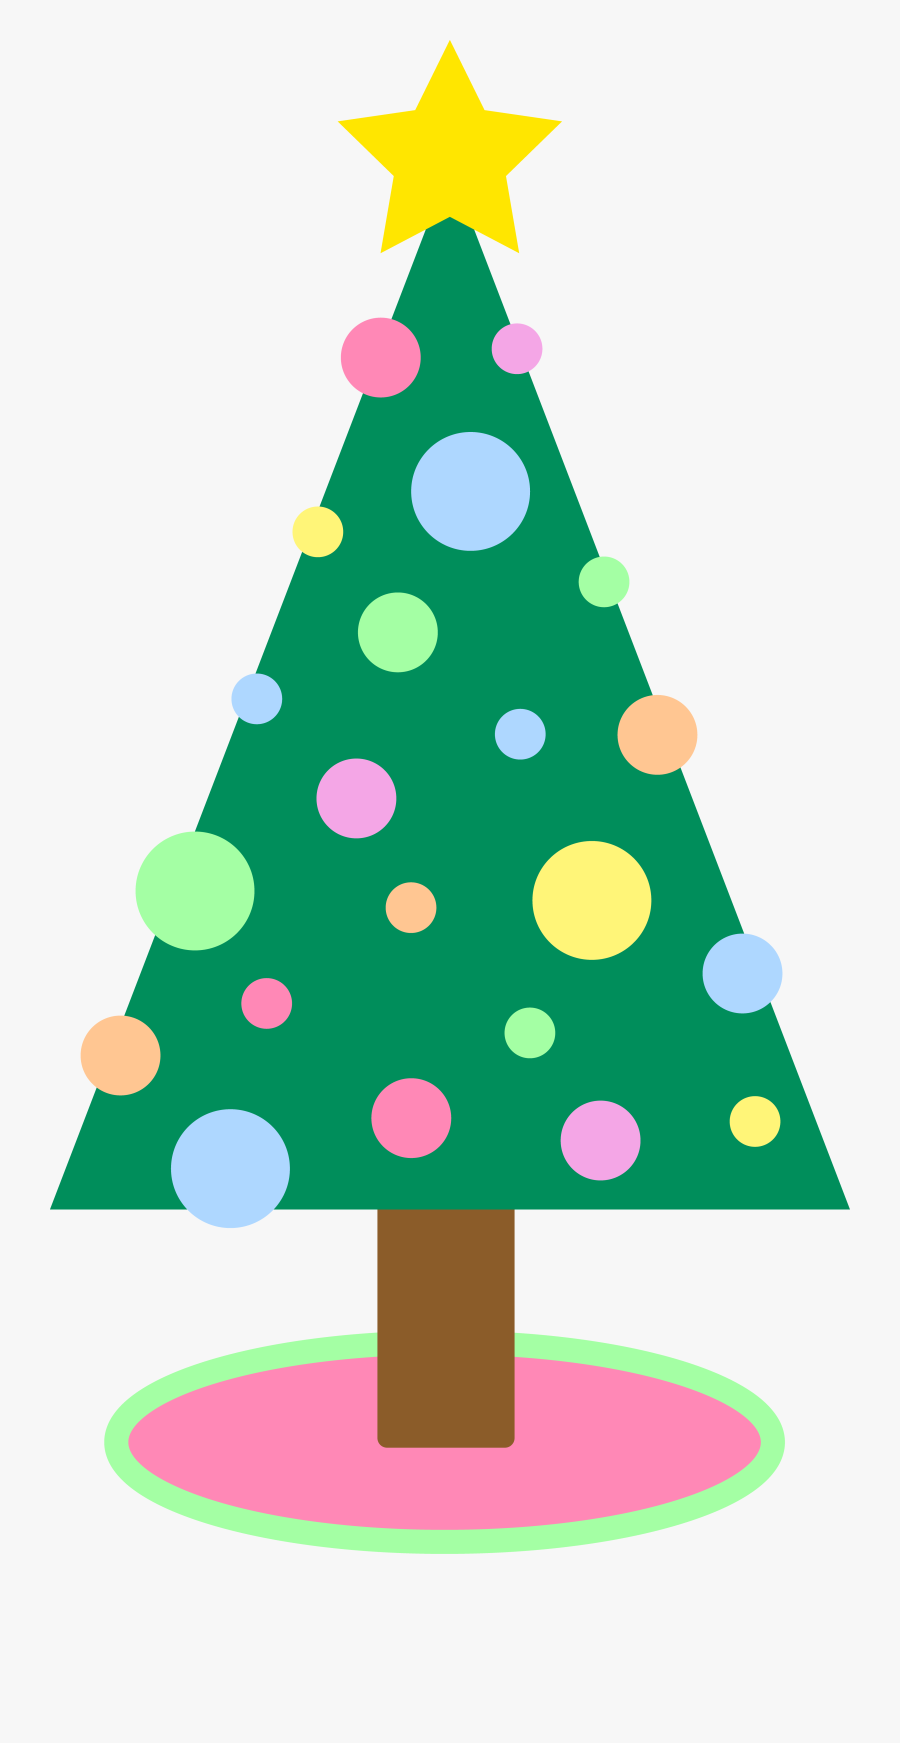 Free Christmas Tree Clipart Public Domain Clip Art - Simple Christmas Tree Cartoon, Transparent Clipart